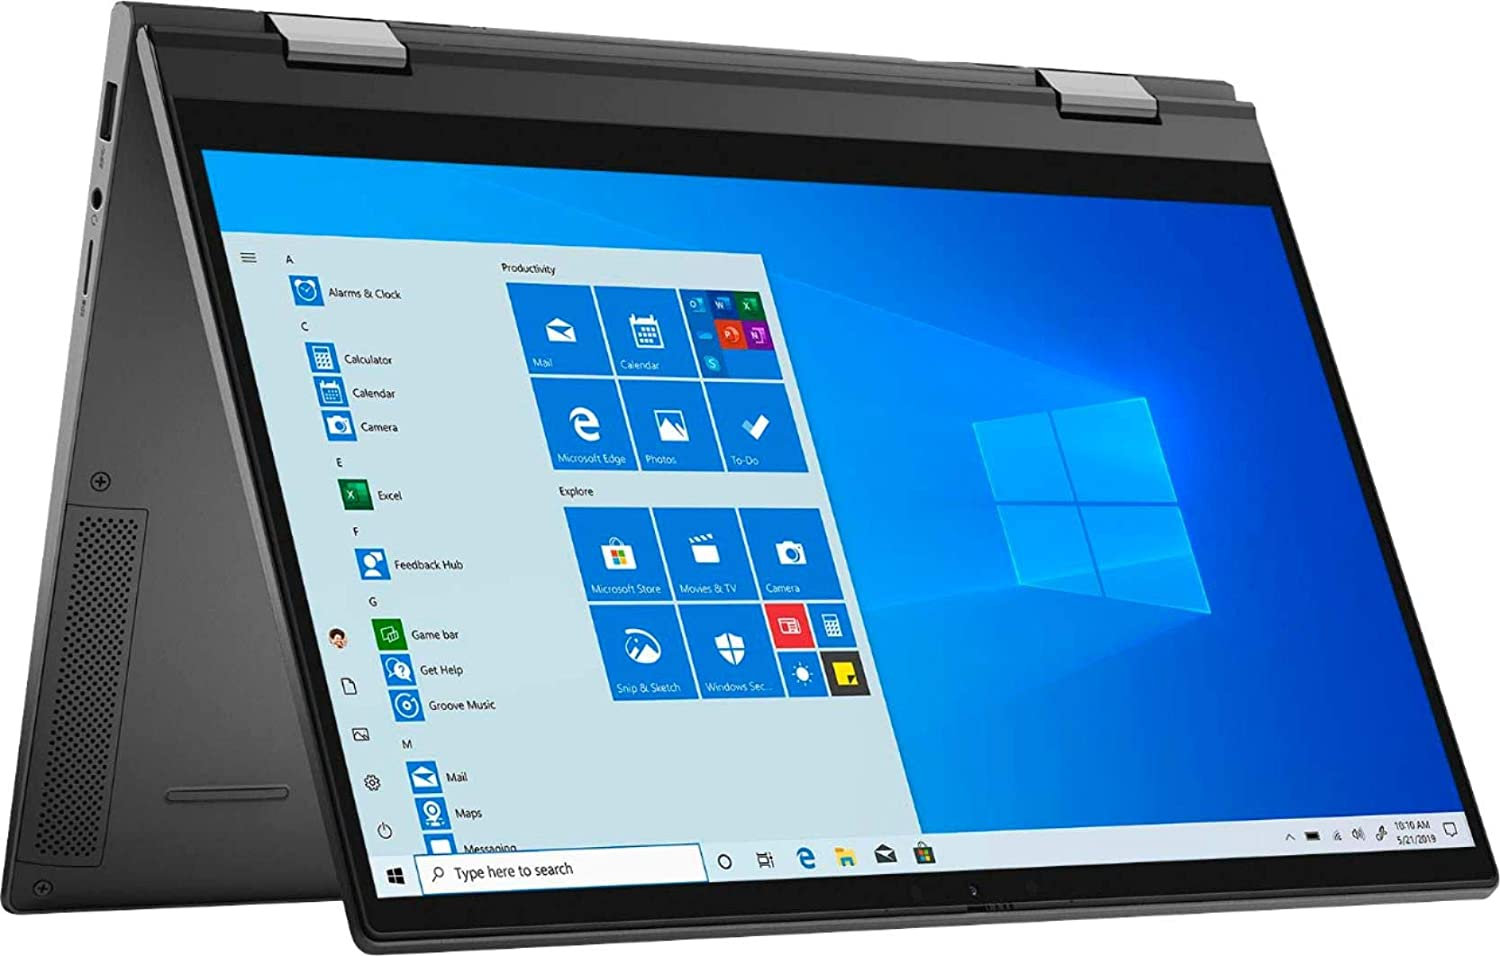 Newest Dell Inspiron 13 7000 2-in-1 Ultrathin and Ultralight Laptop, 13.3